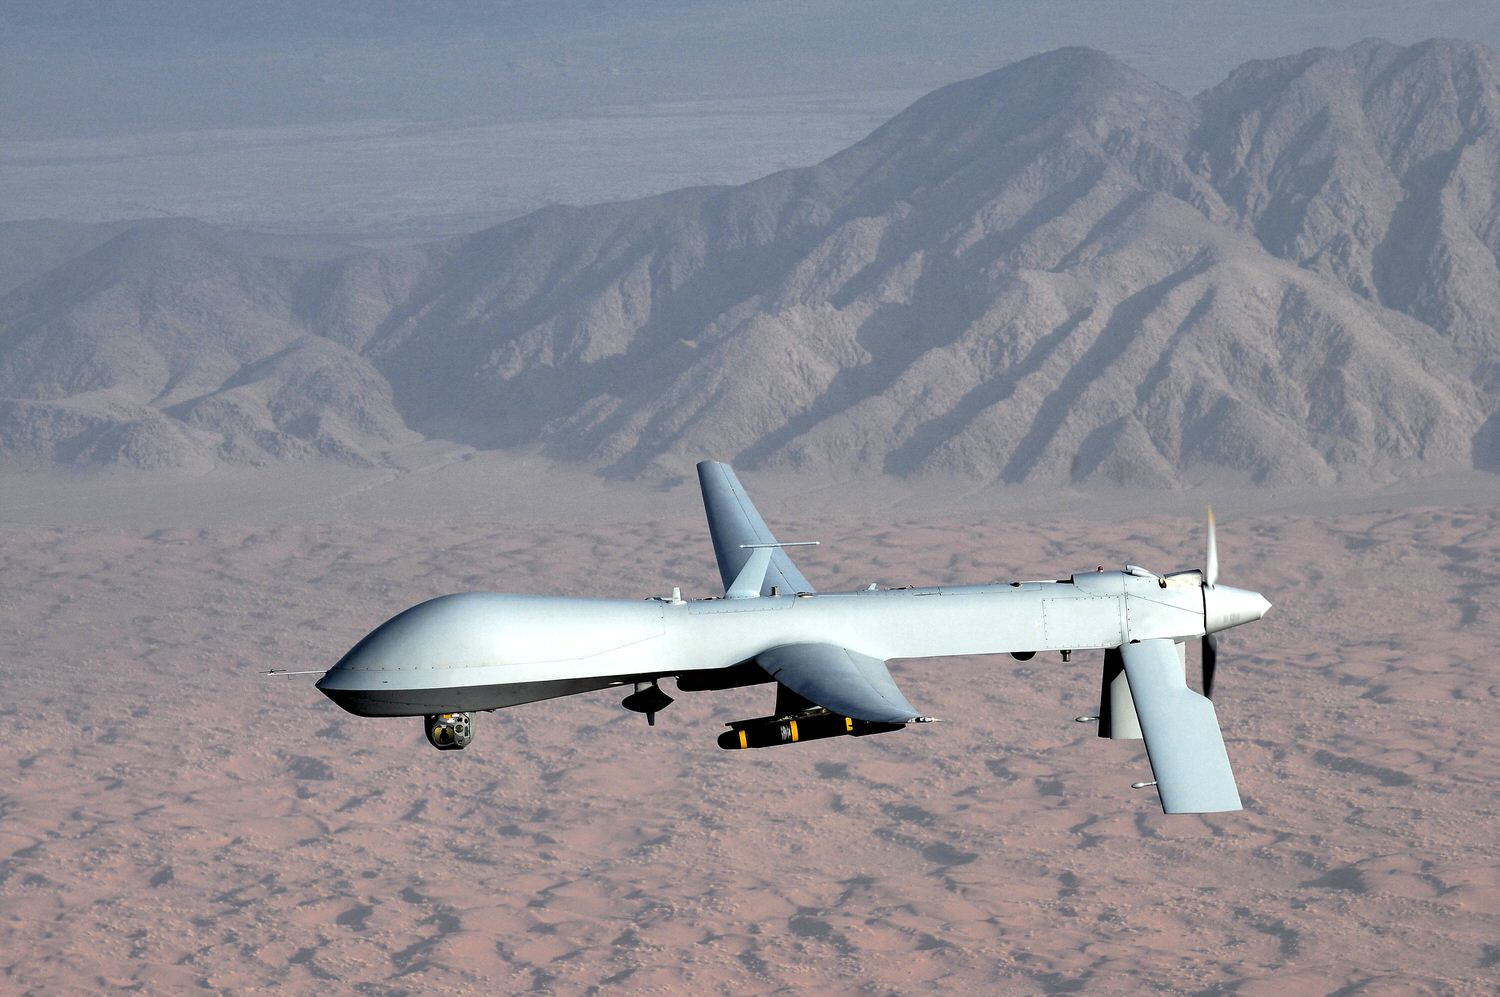 Unmanned MQ-1 Predator drone similar to the kind that may be used in the case of intervention.